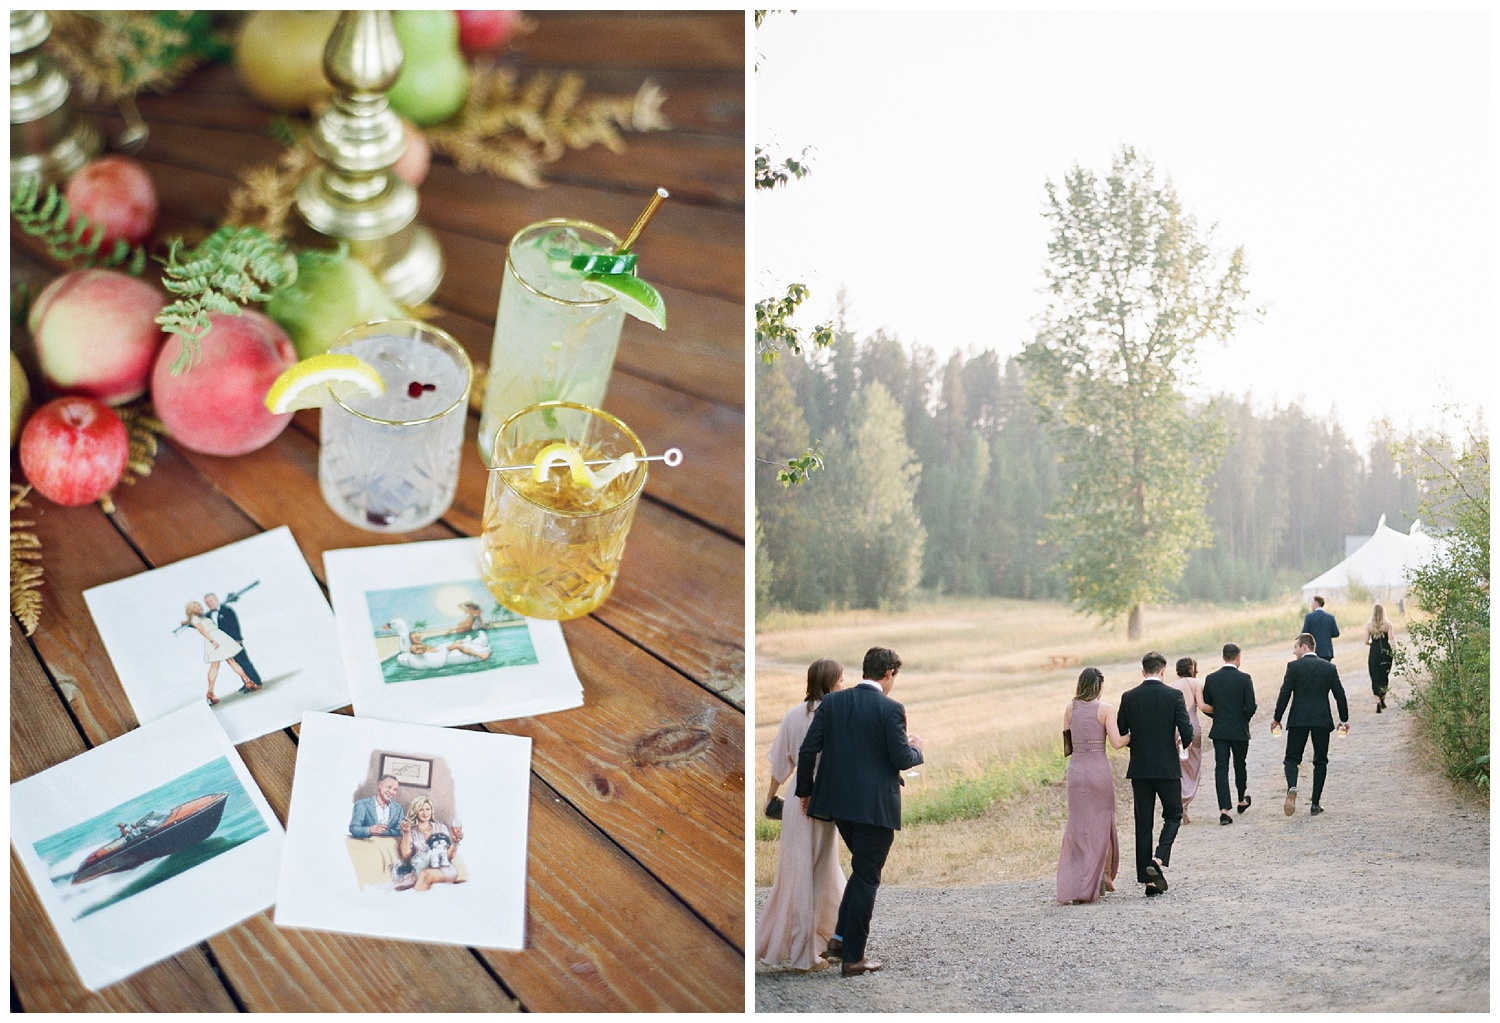 Custom designed napkins with Vogue-style illustrations of the couple at the reception; Sylvie Gil Photography